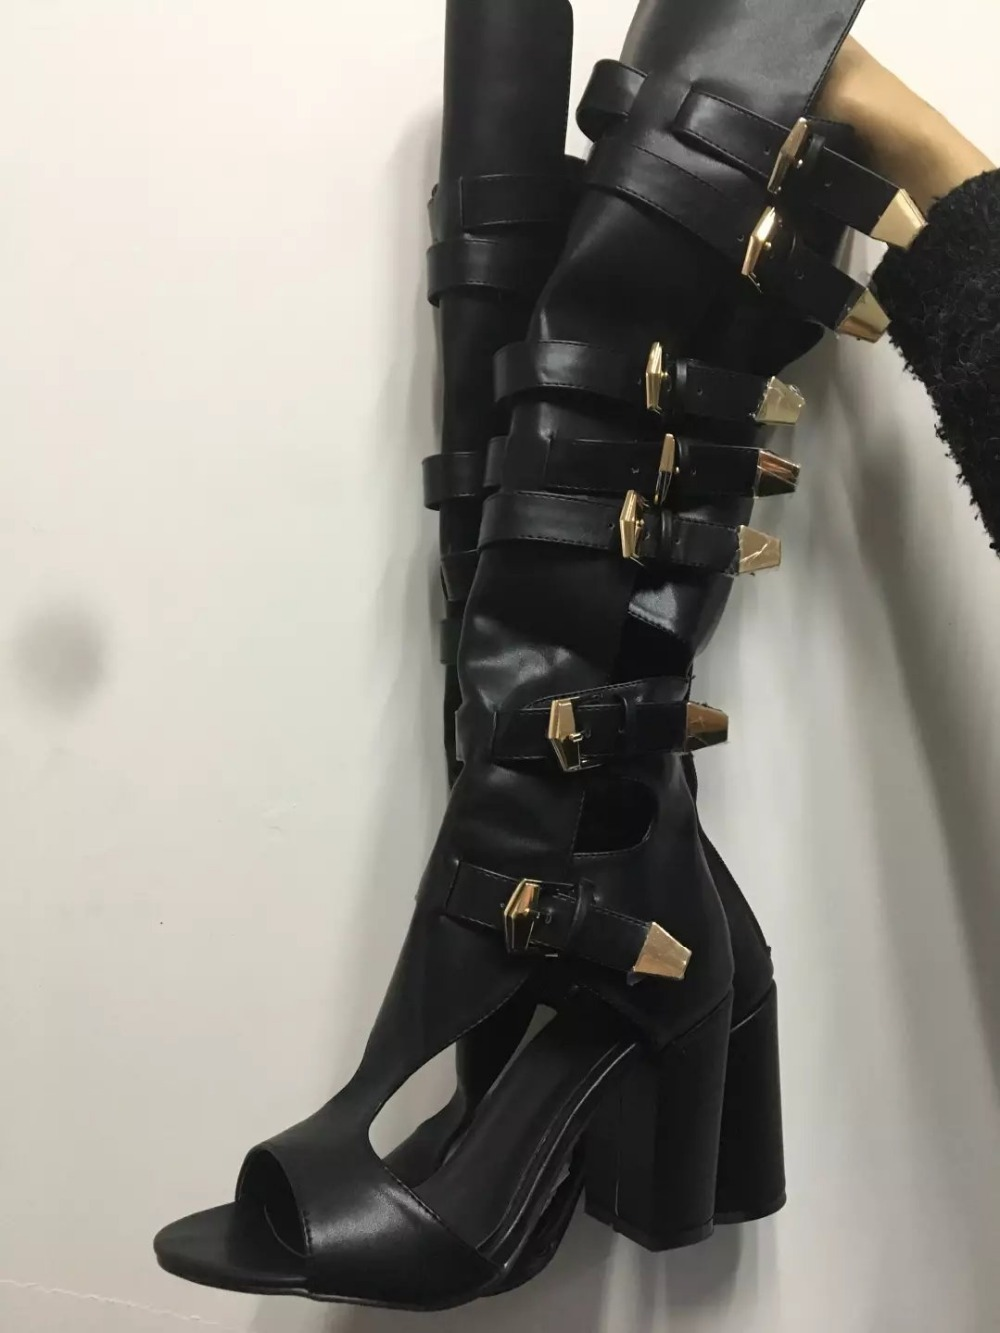 real picture 2017 summer women sandals square heels high heels over the knee boots cut-outs black gladiator sandals women back zipper tassel sandals 2017 summer style cut outs gladiator booties black leather stiletto high heels platform short boots